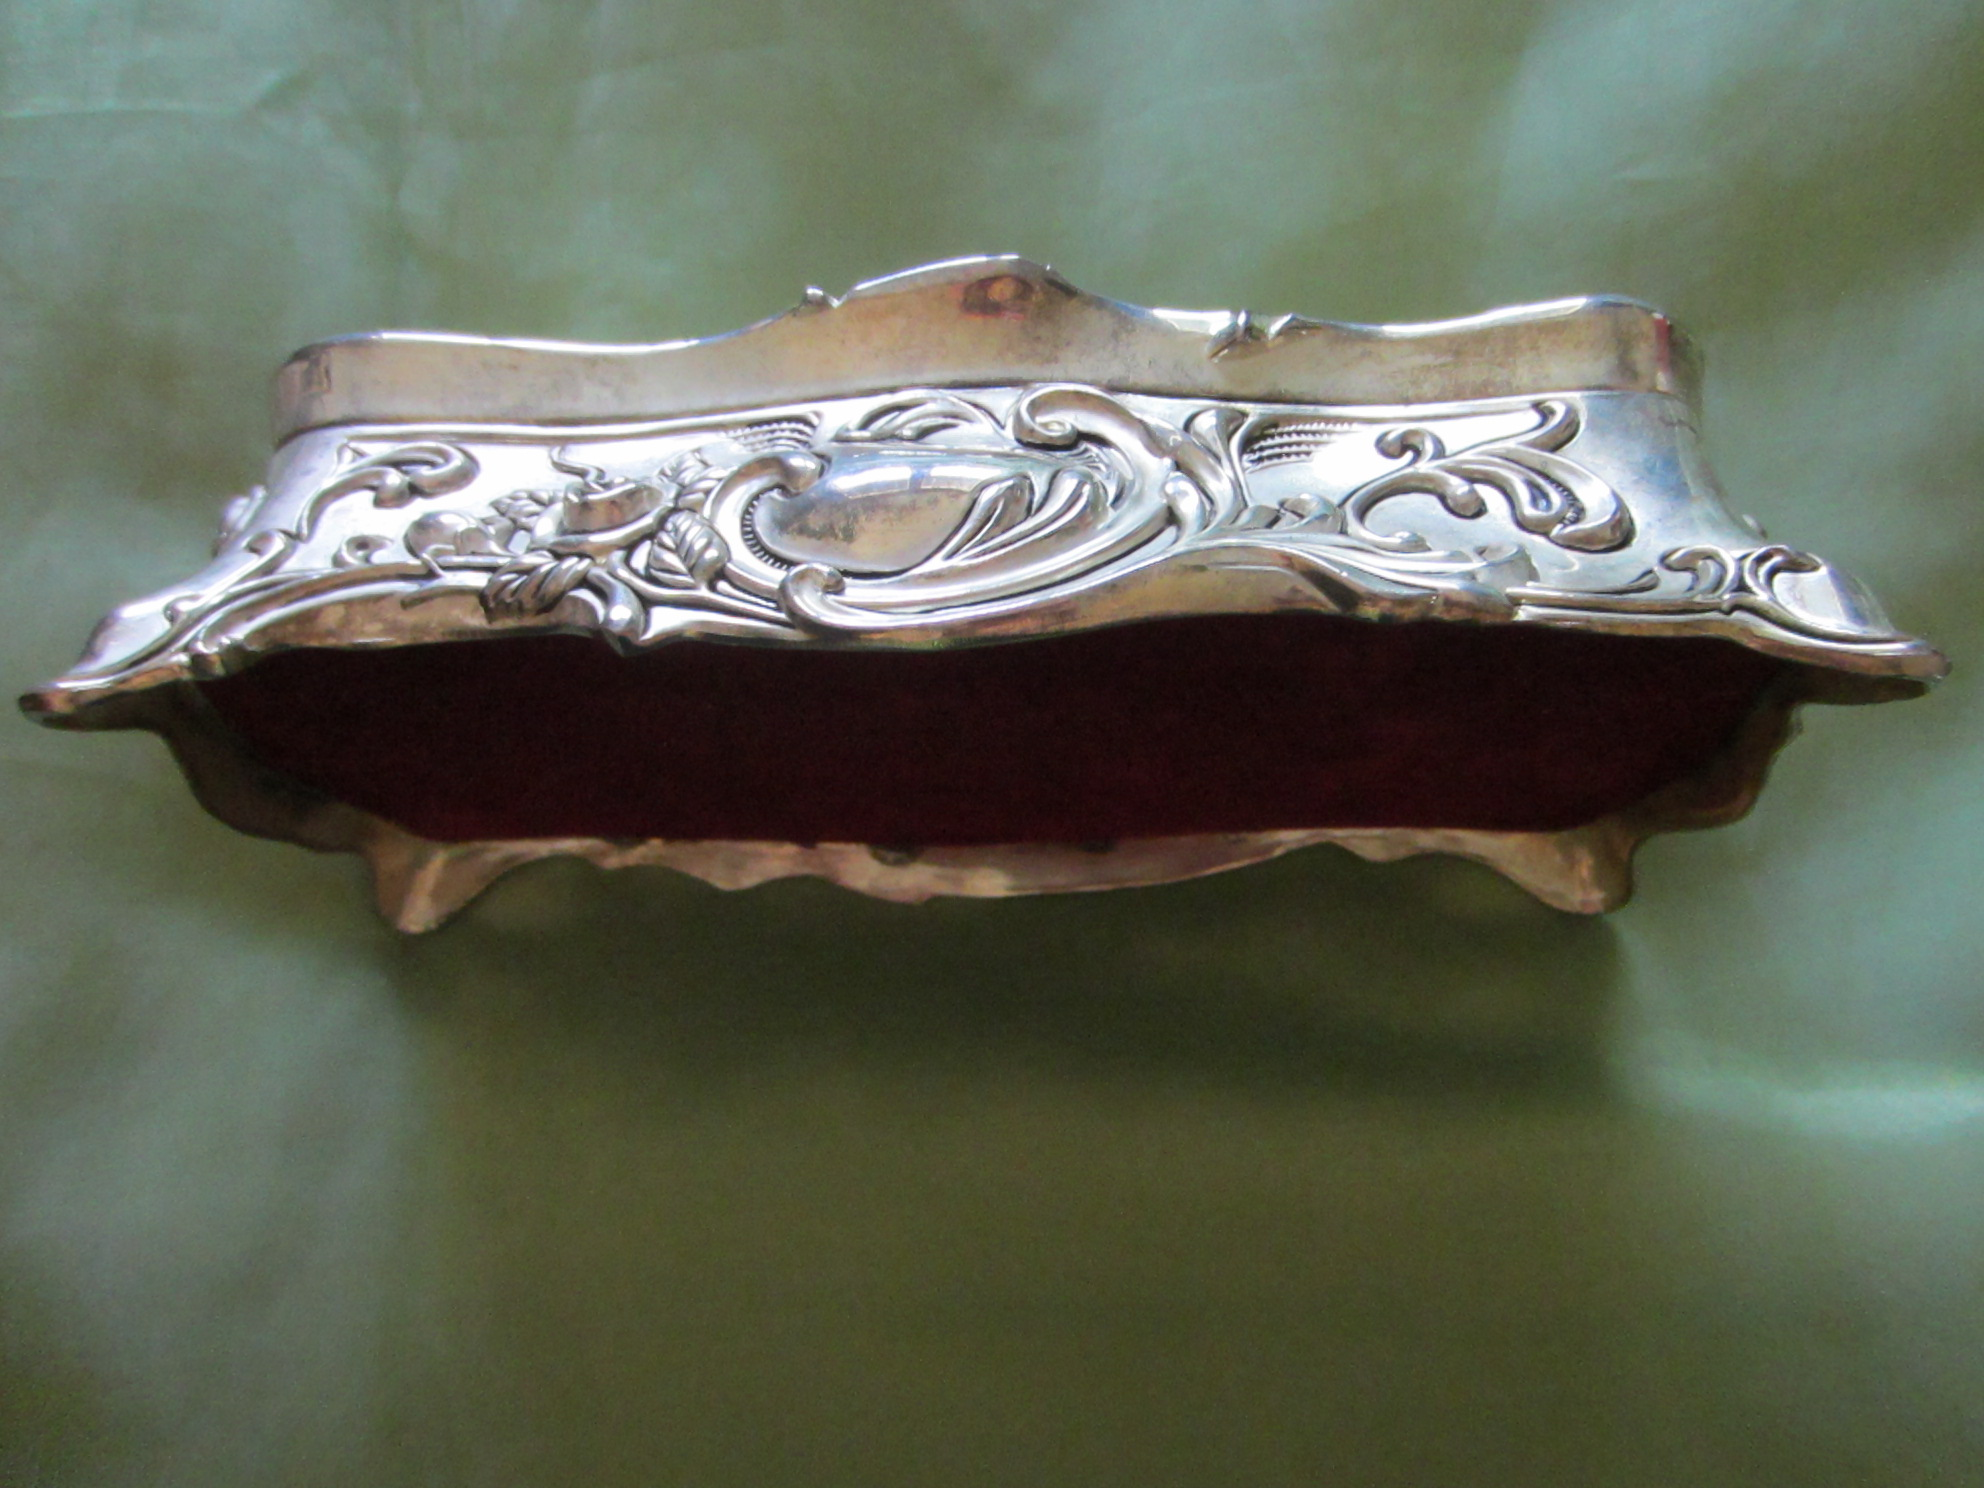 Art Deco Style Jewelry Boxes Silver Plated Art Deco Jewelry Box With Roses Sold For Sale